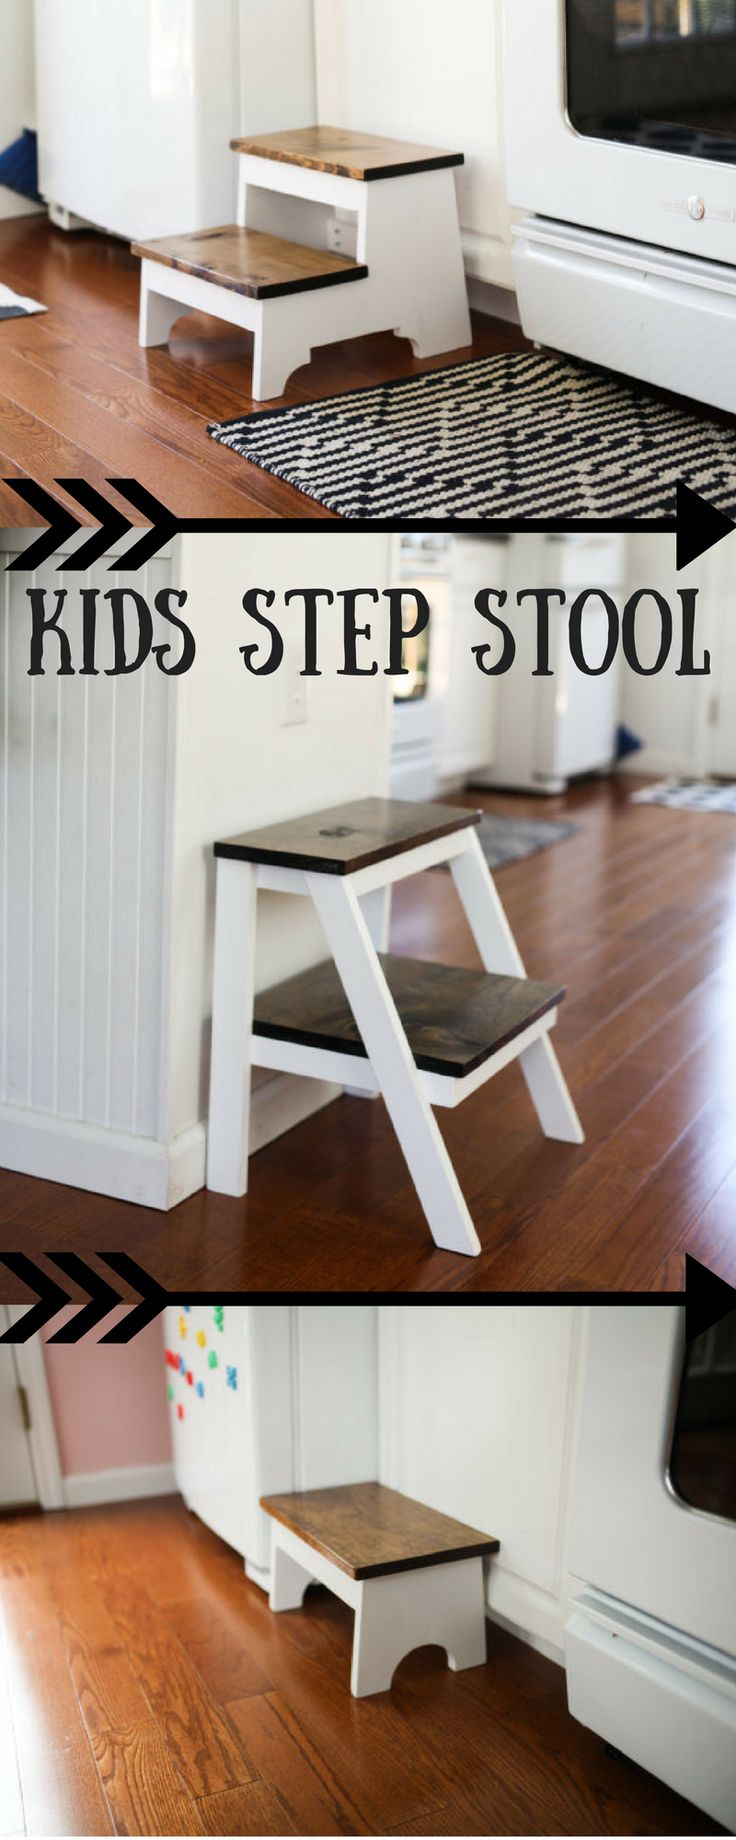 Wooden dollhouse step foot stool wood footstool stepstool furniture -  Keep Your Kids Safe Wooden Step Stool Rustic Style I Could Even